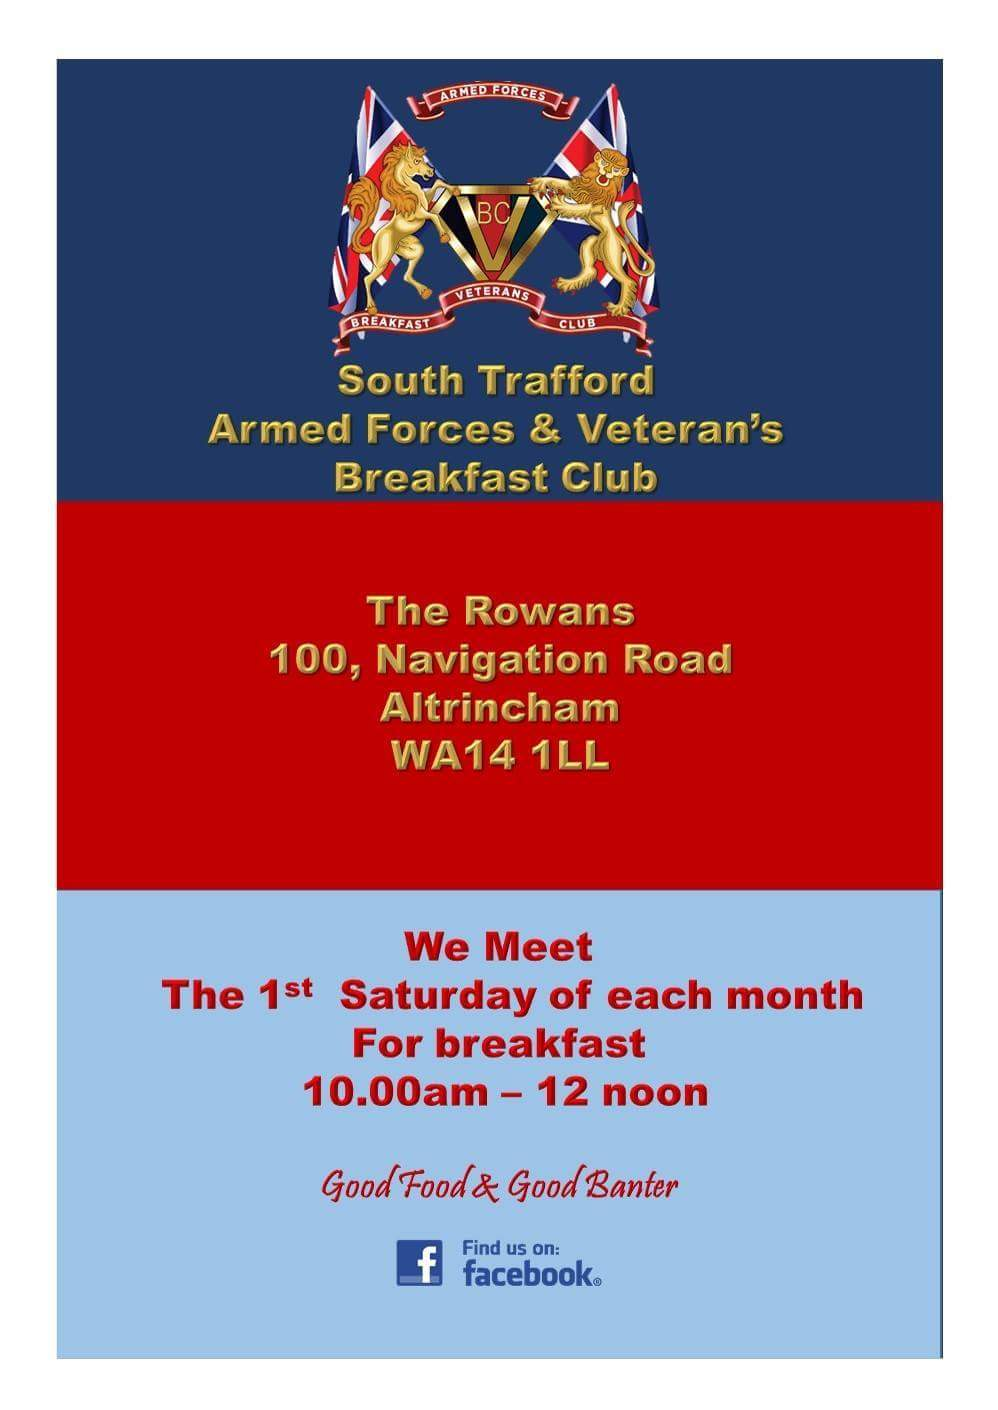 South Trafford Veterans Breakfast Club